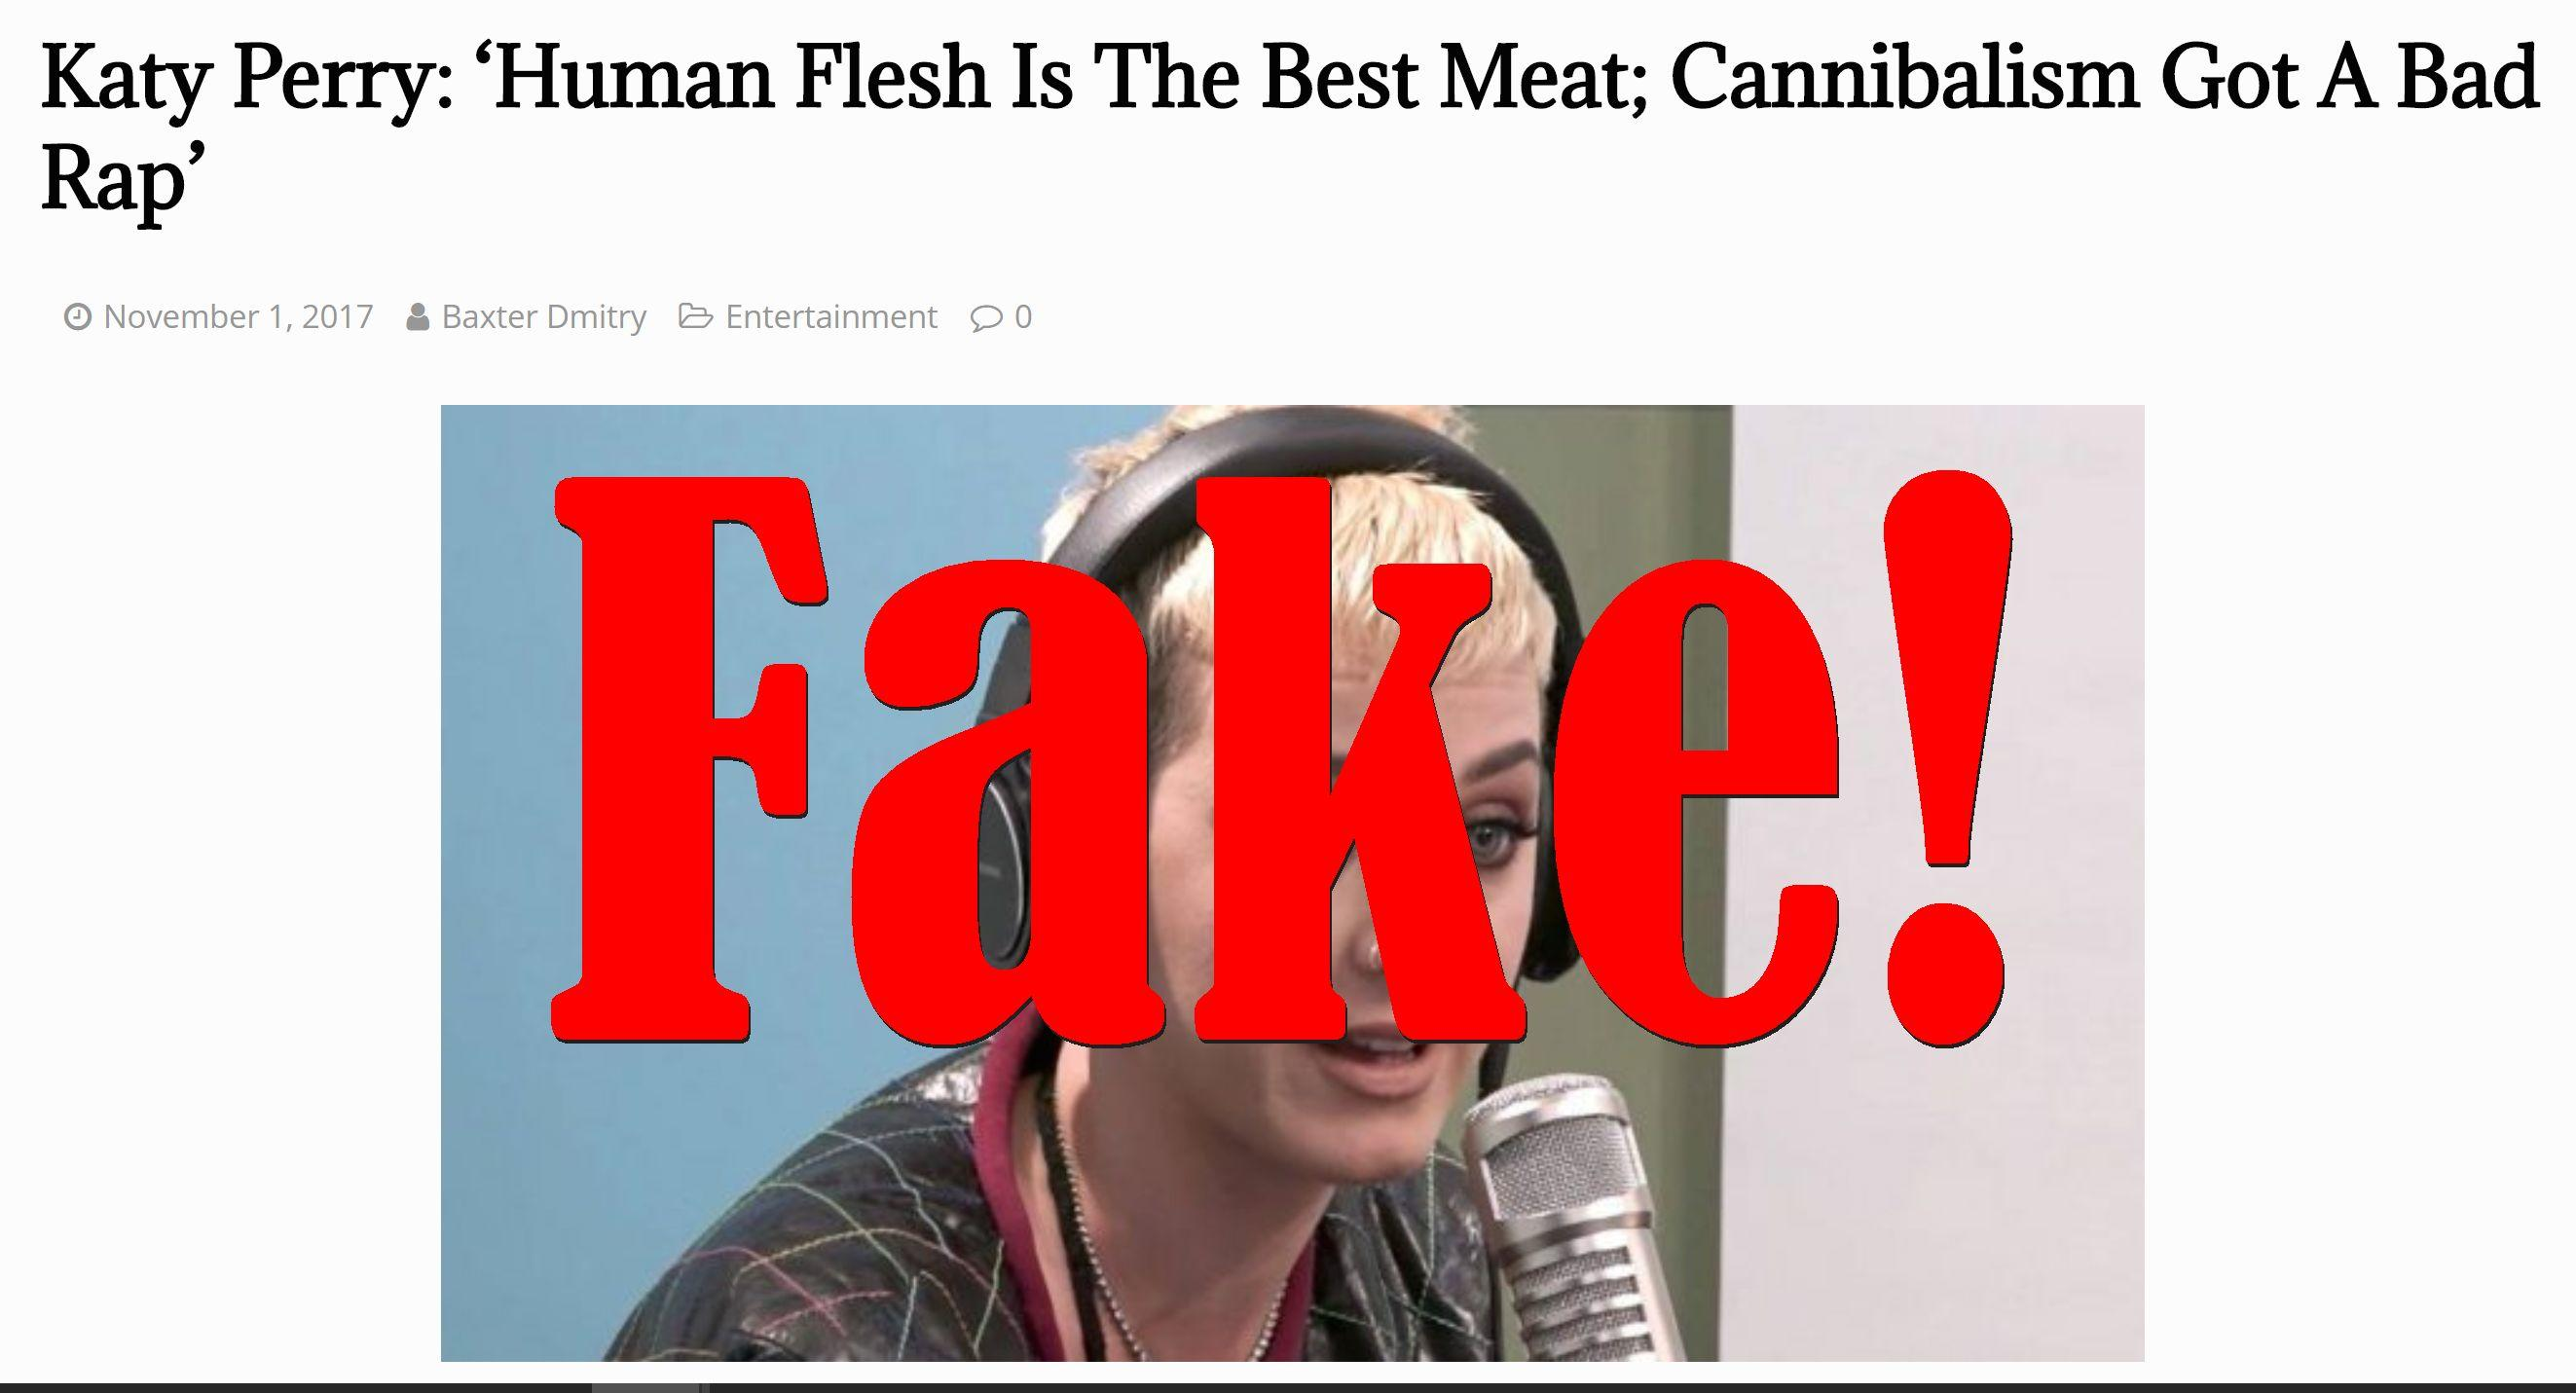 Fake News: Katy Perry Did NOT Say Human Flesh Is The Best Meat, Cannibalism Got A Bad Rap